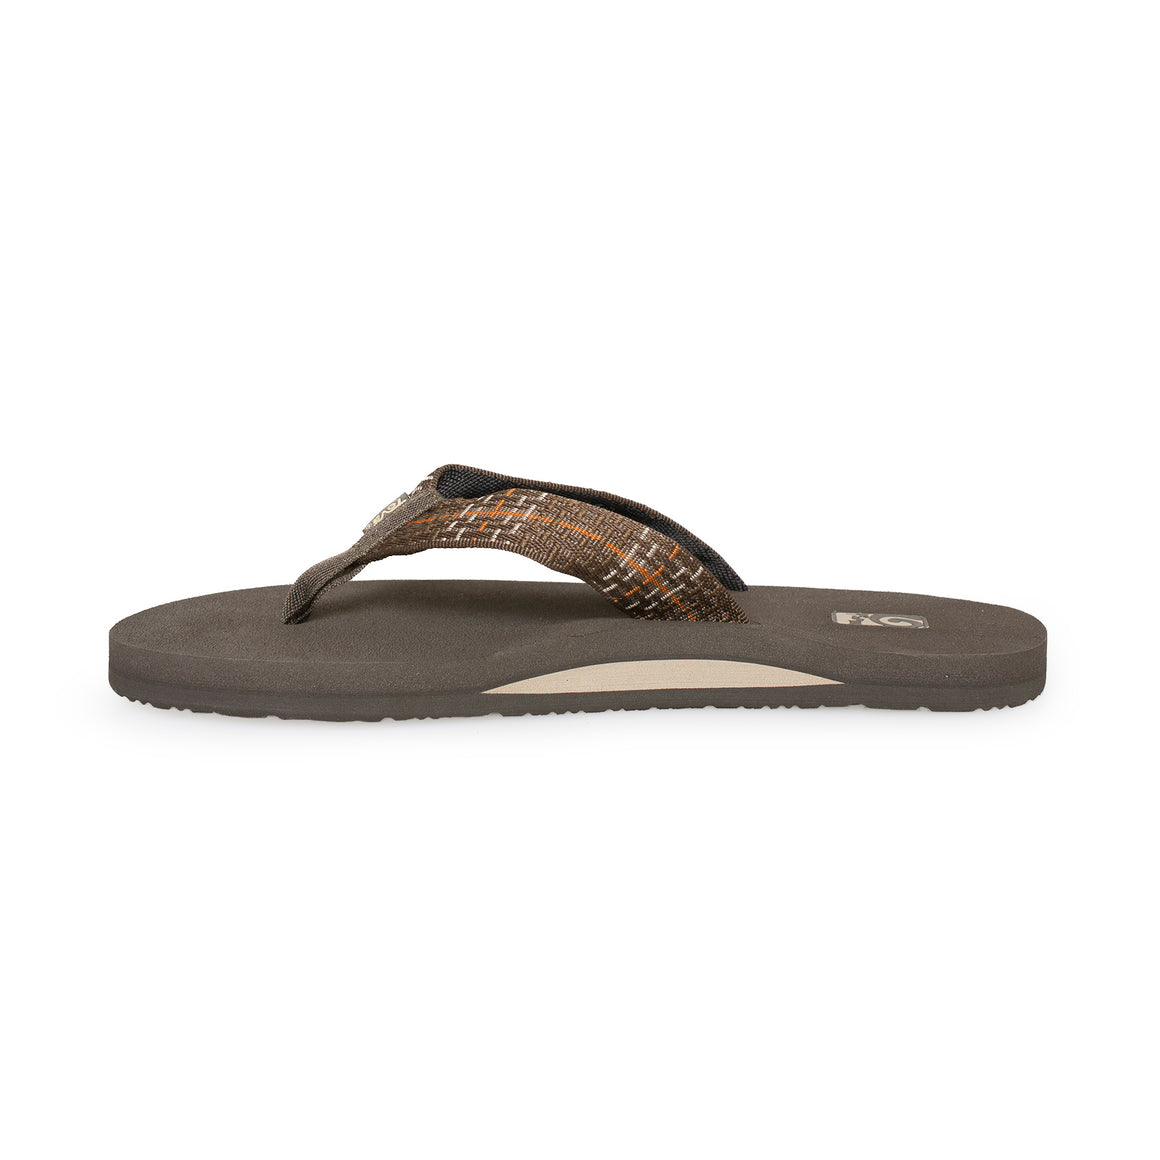 Teva Mush II Tartan Brown Flip Flops - Men's